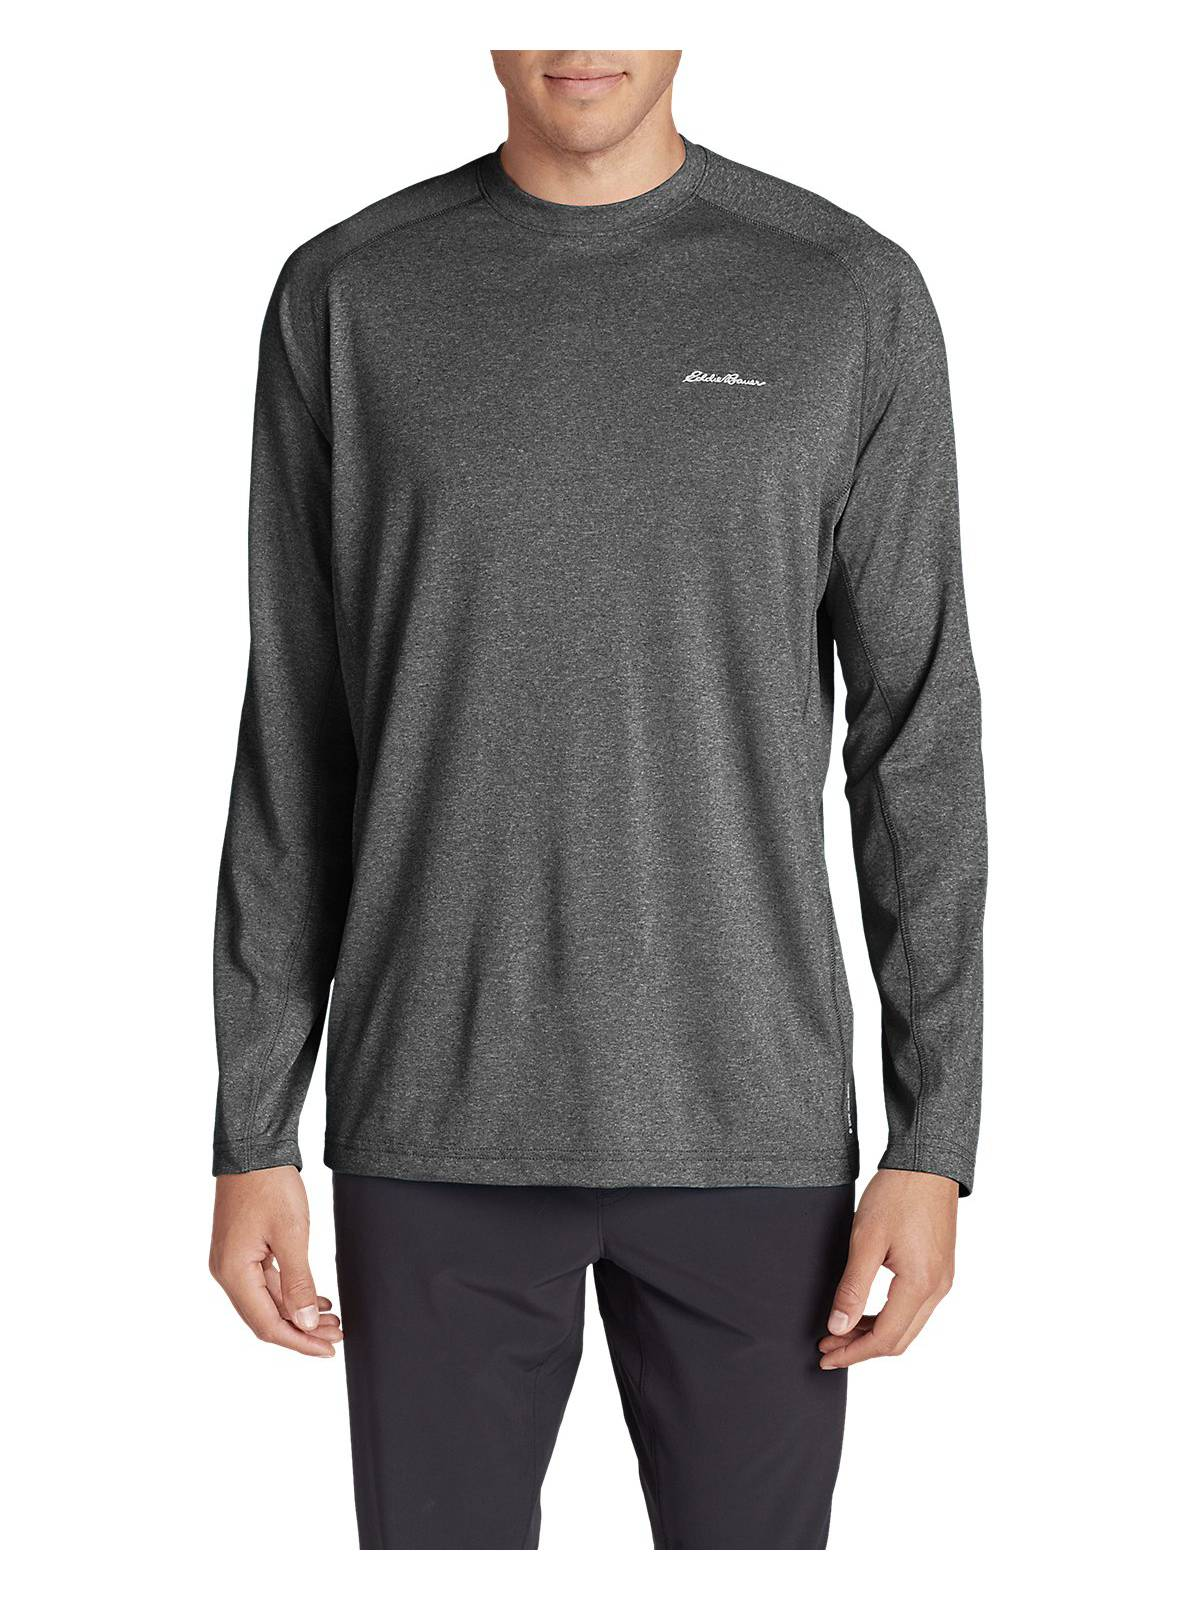 3357201a Eddie Bauer Men's Resolution Long-Sleeve T-Shirt - Walmart.com